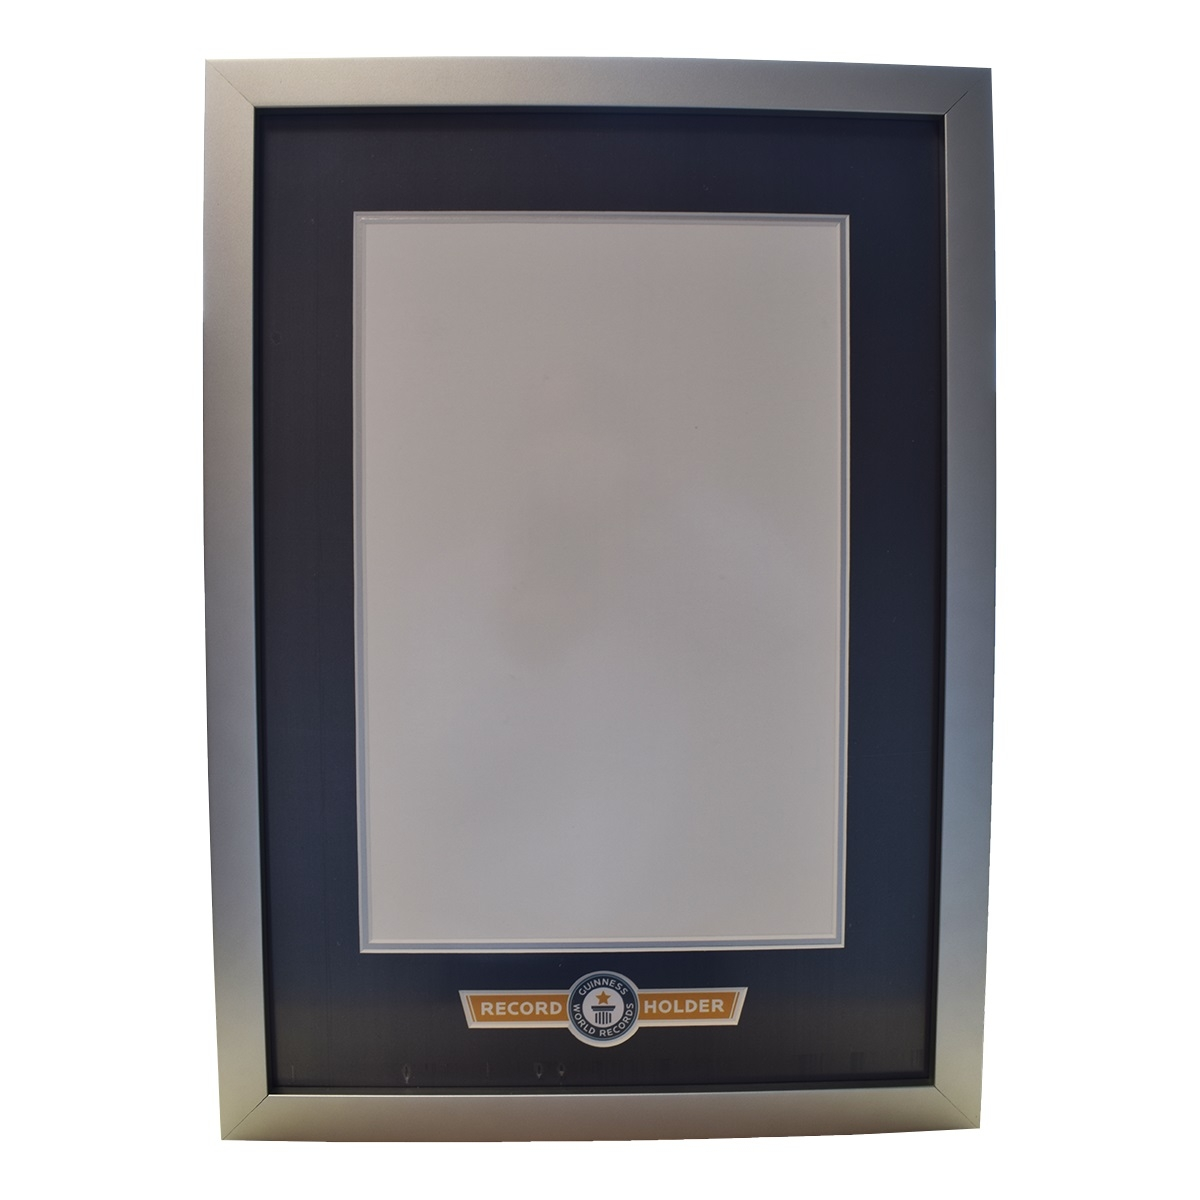 The Guinness World Records Store - Record Holder Certificate Frame